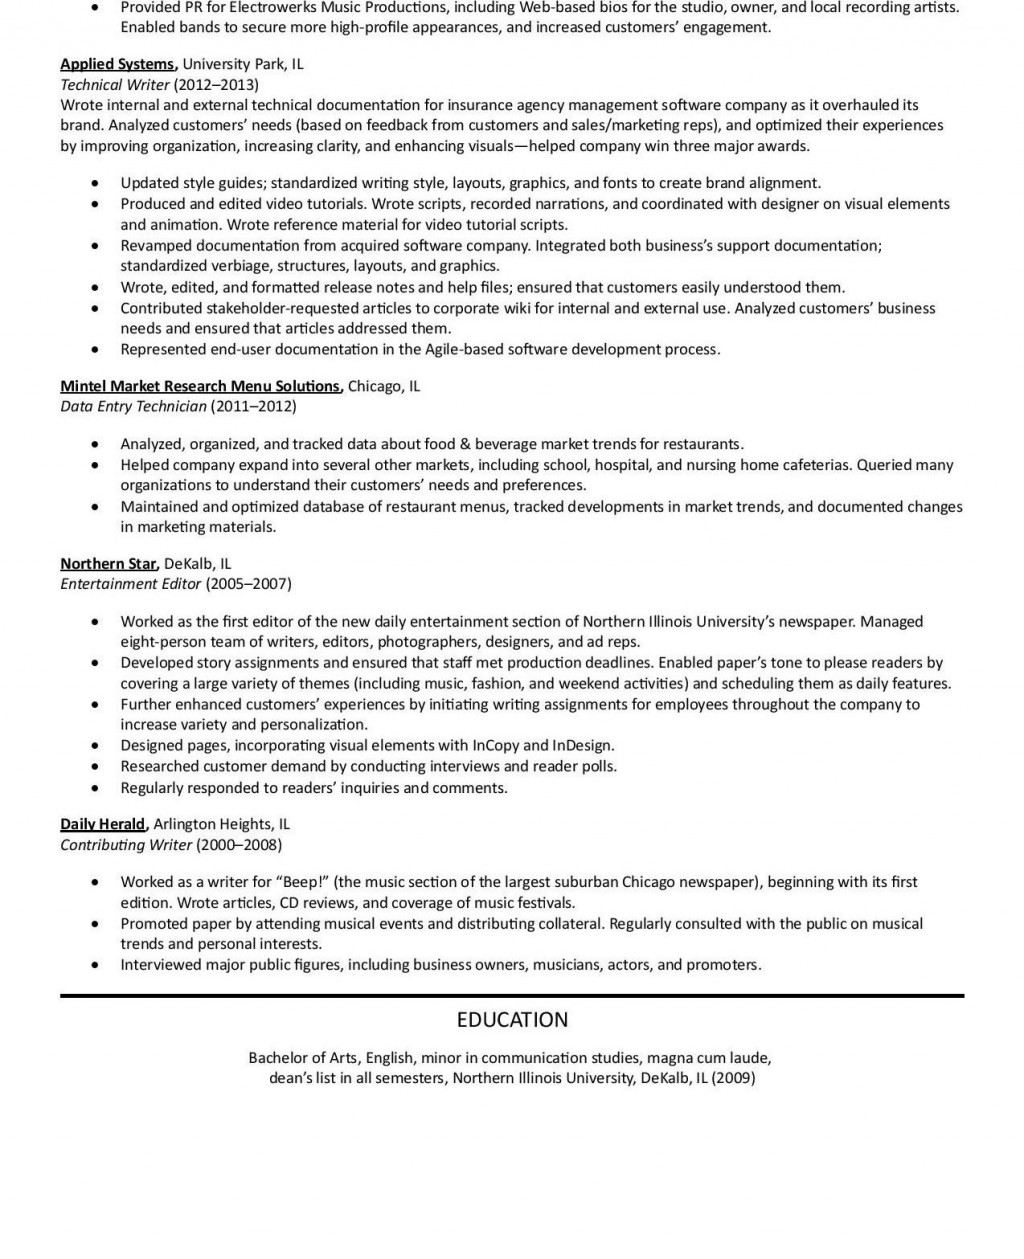 021 Research Paper Resume Evan Jones Thorne Page Computer Science Topic Unforgettable Ideas Large